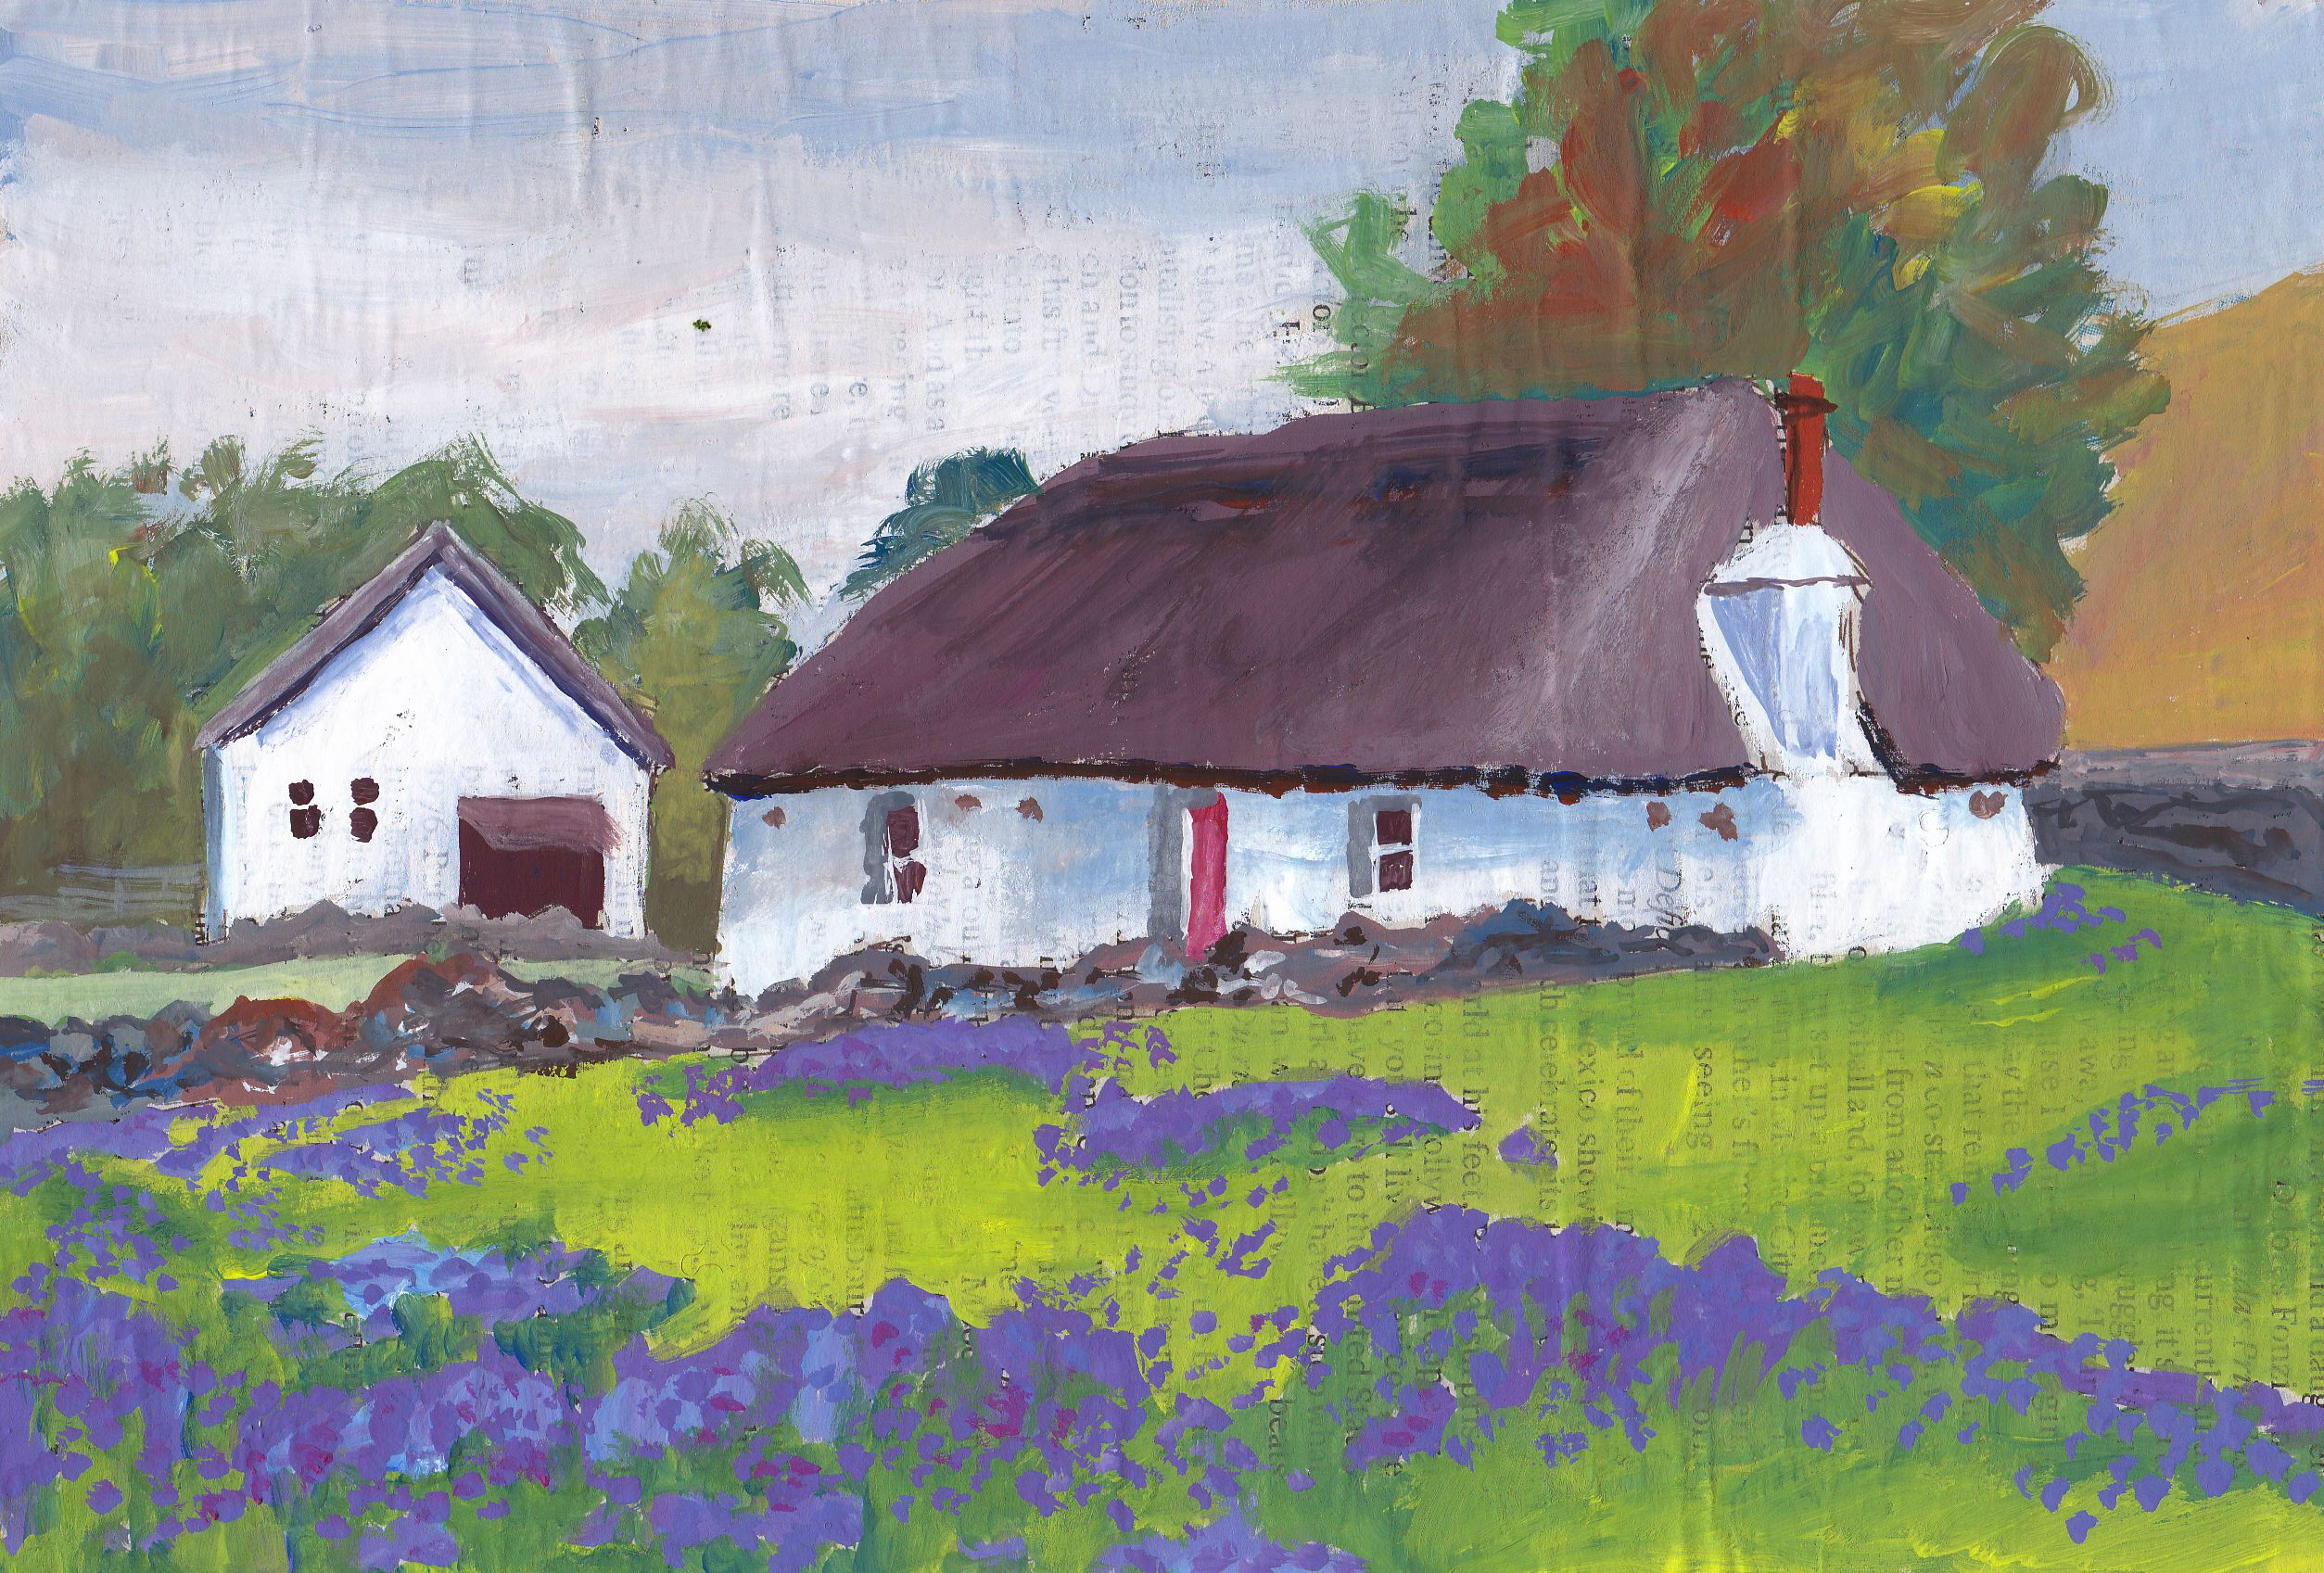 Independent Cottage. 15 x 22 cm. Gouache auf Zeitung und Lakarton/ on newspaper & carton.